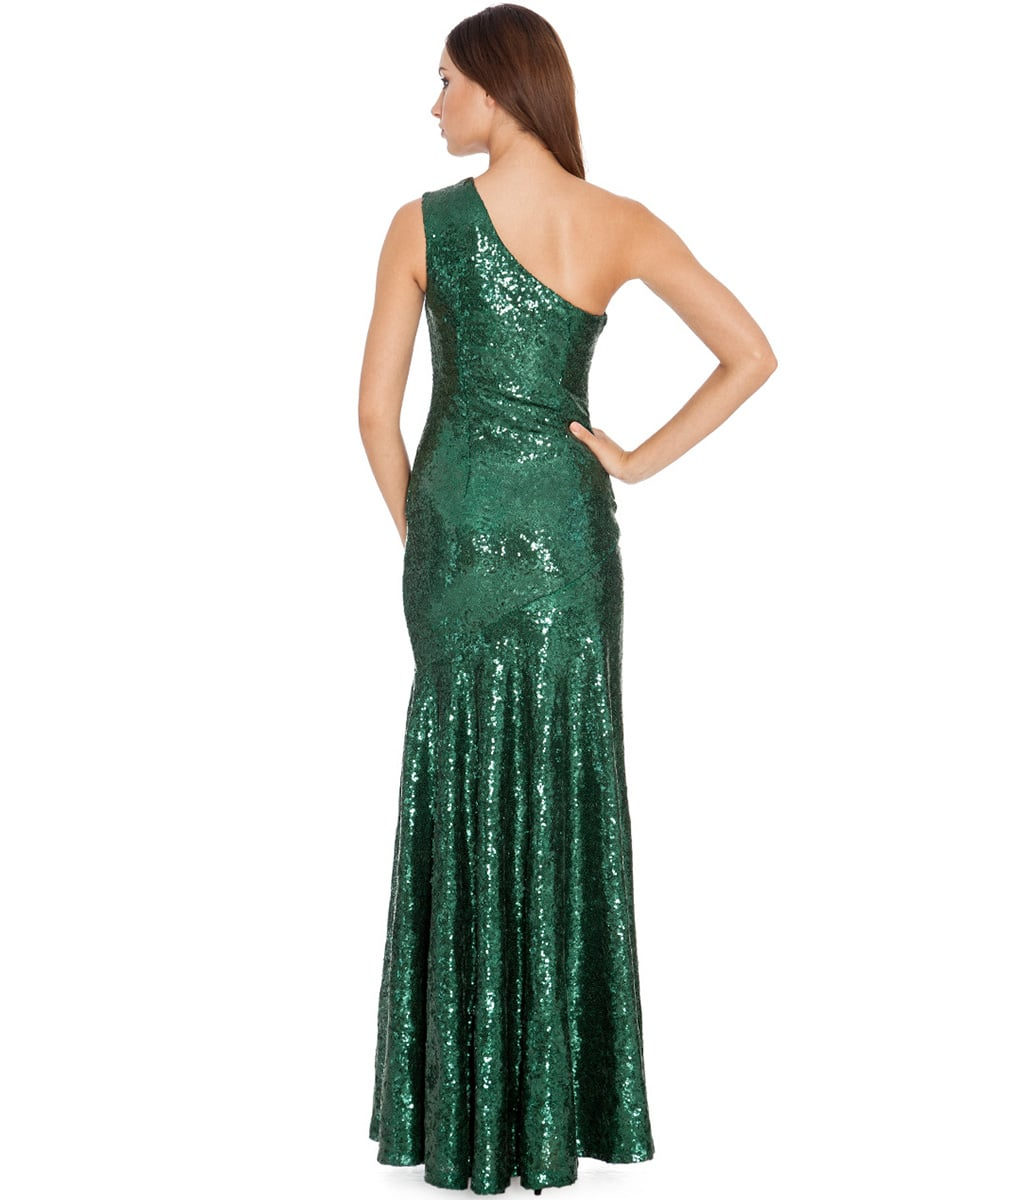 Alila-One-shoulder-emerald-sequin-gown-city-goddess-BACK